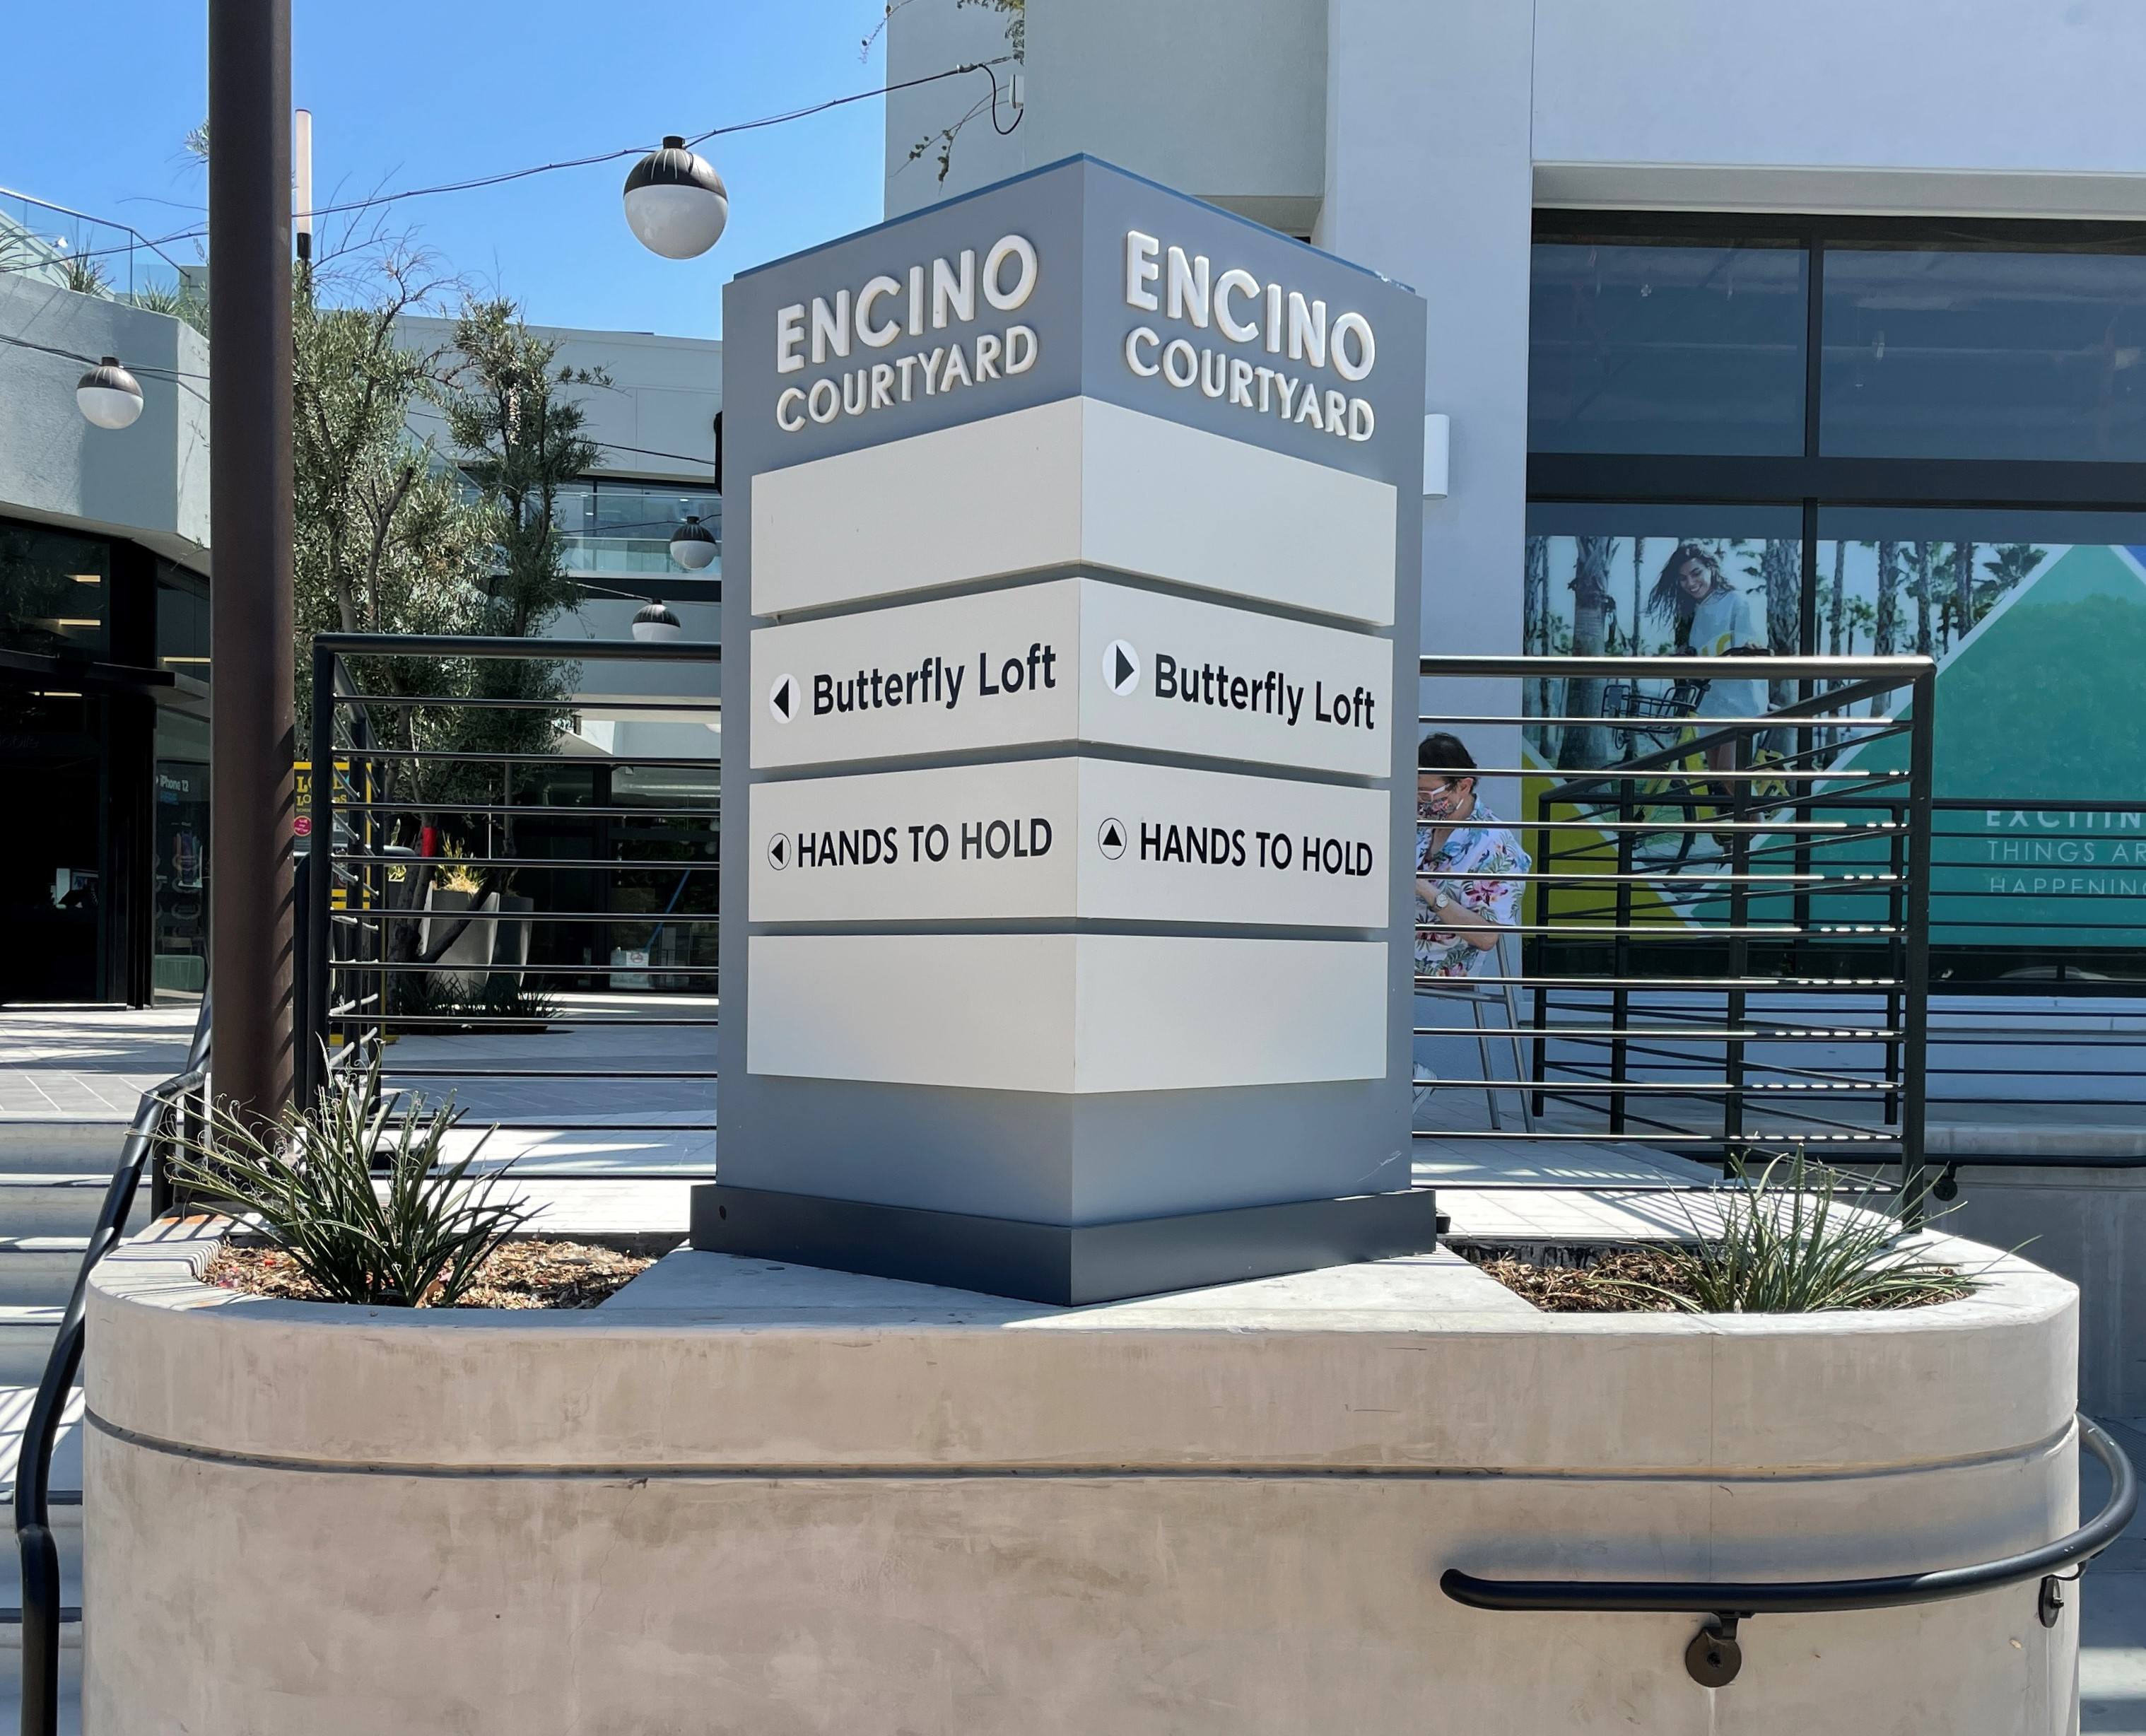 Businesses in commercial spaces can use outdoor wayfinding signs to guide customers. Like these signs for Hands to Hold's Encino Courtyard branch.